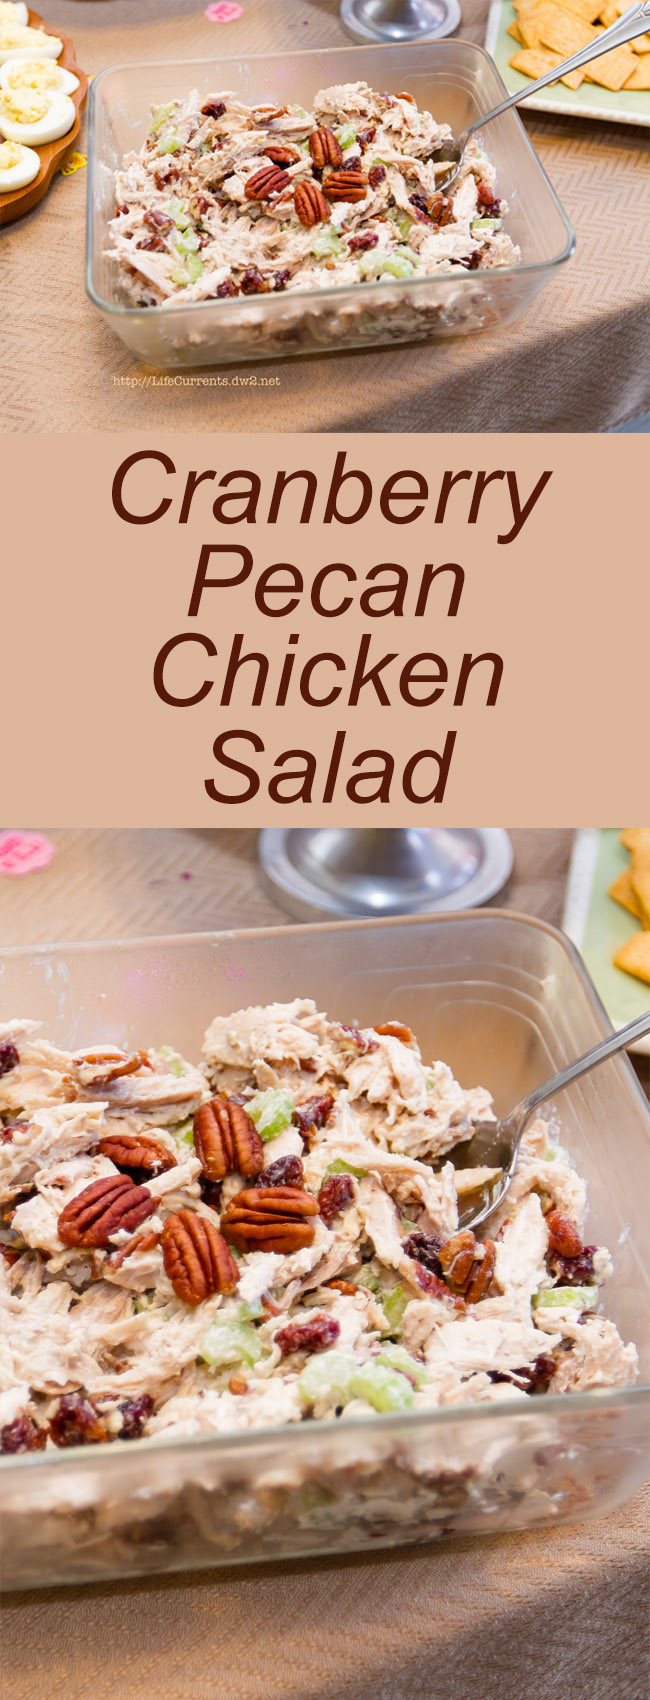 Cranberry Pecan Chicken Salad long pin for Pinterest with two images and a title